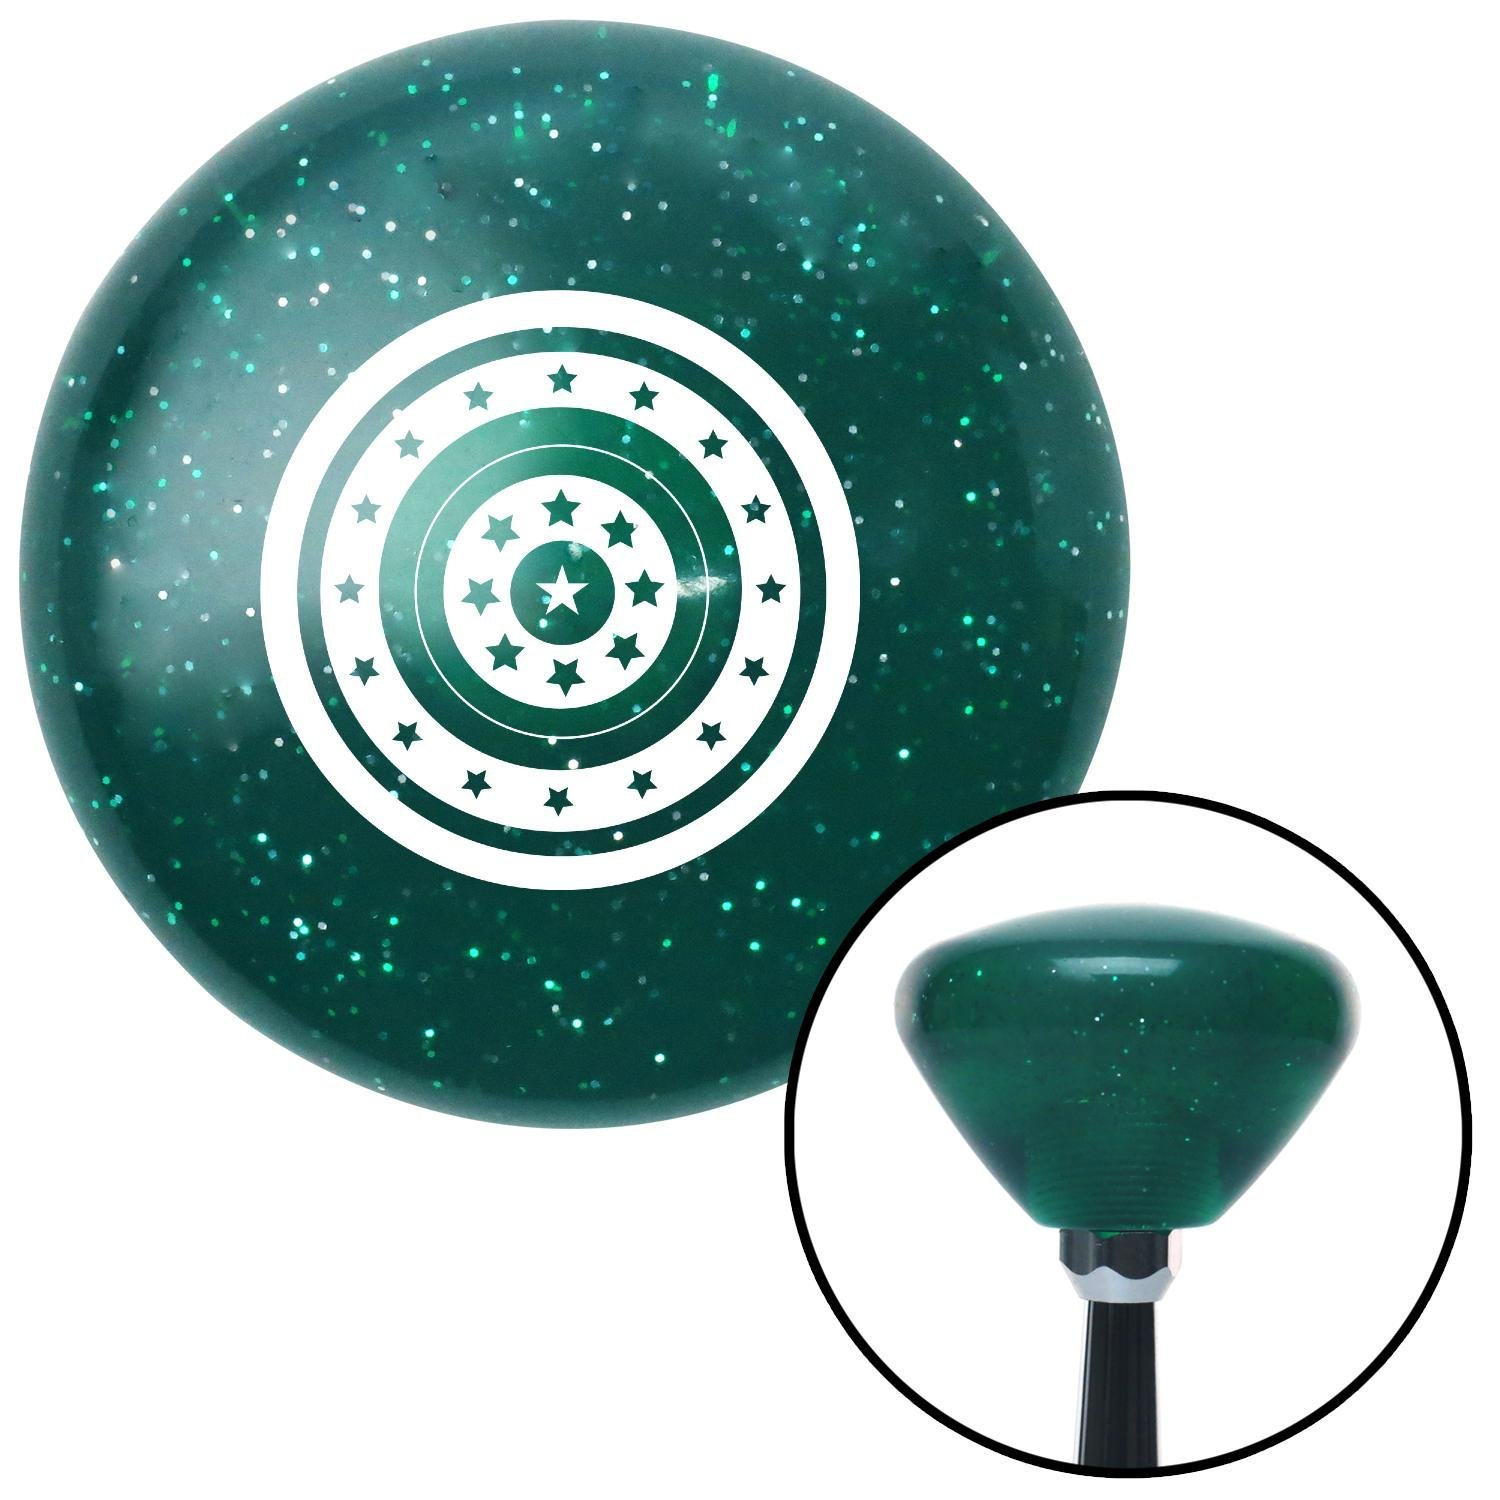 American Shifter 207644 Green Retro Metal Flake Shift Knob with M16 x 1.5 Insert White Star Target